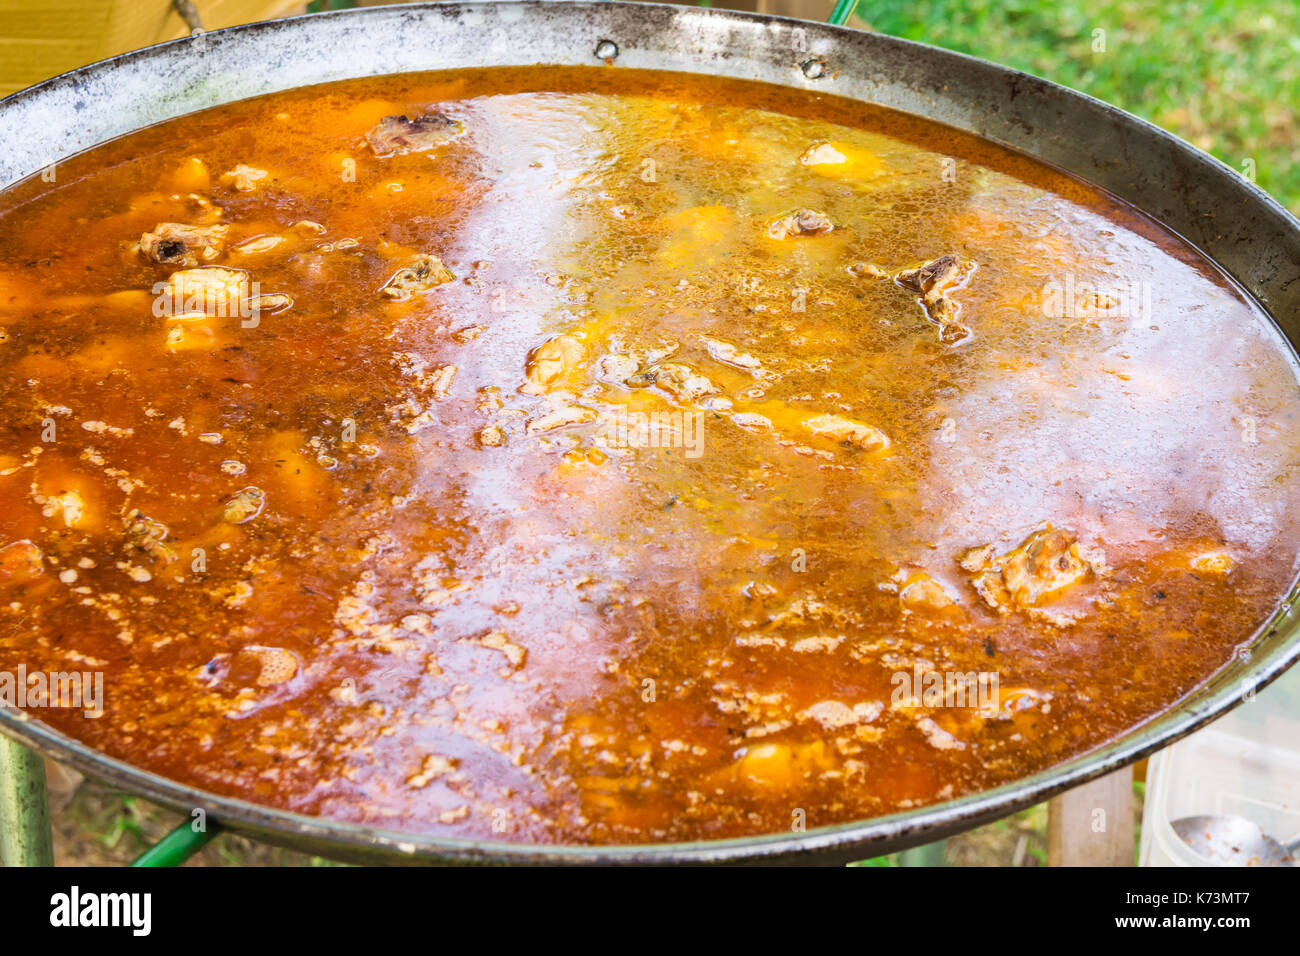 Process of cooking Spanish Valencian paella or jambalaya in large flat frying pan. Ingredients meat, rice, vegetables, spices simmering in broth with  Stock Photo